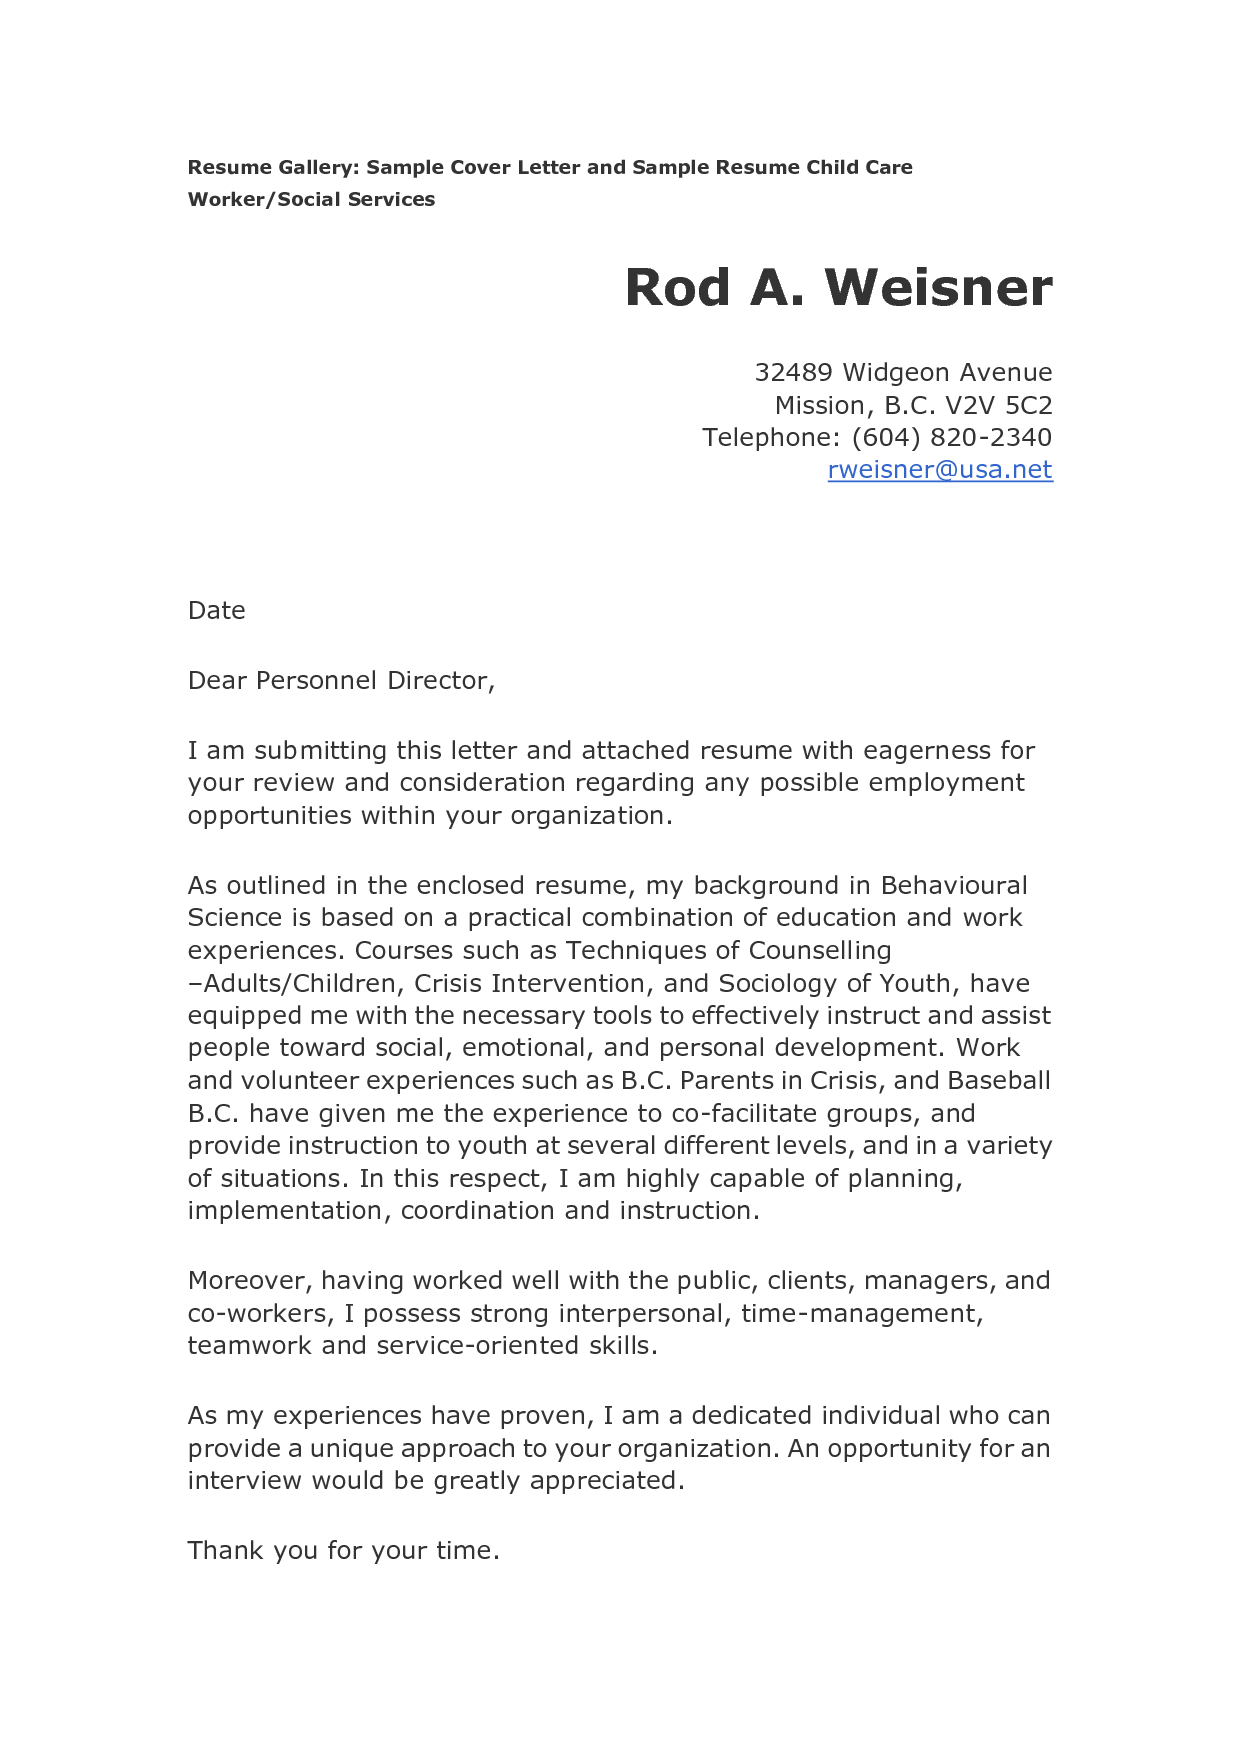 Child care cover letter for resume http www for Cover letters for social service jobs